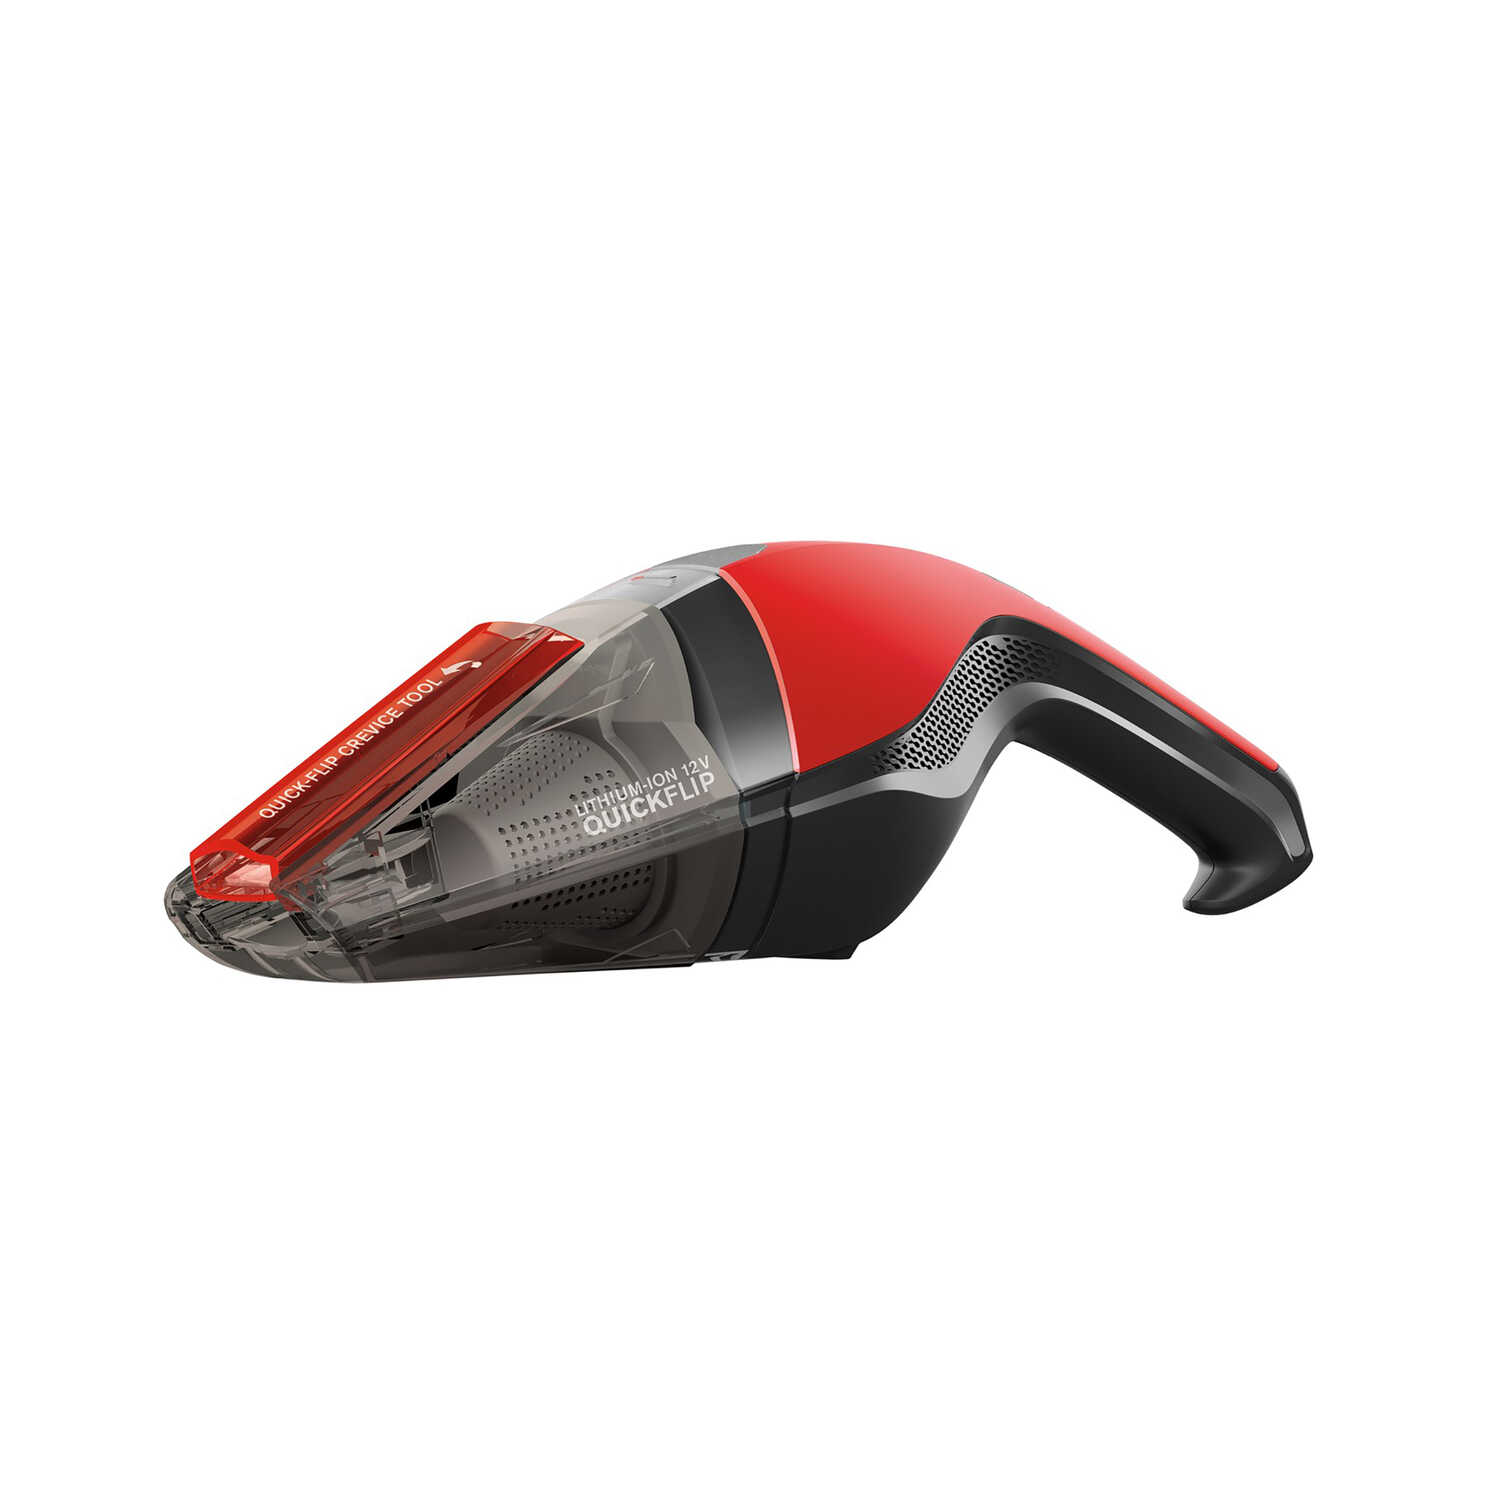 Dirt Devil  QuickFlip  Bagless  Pet Vacuum  Standard  Red